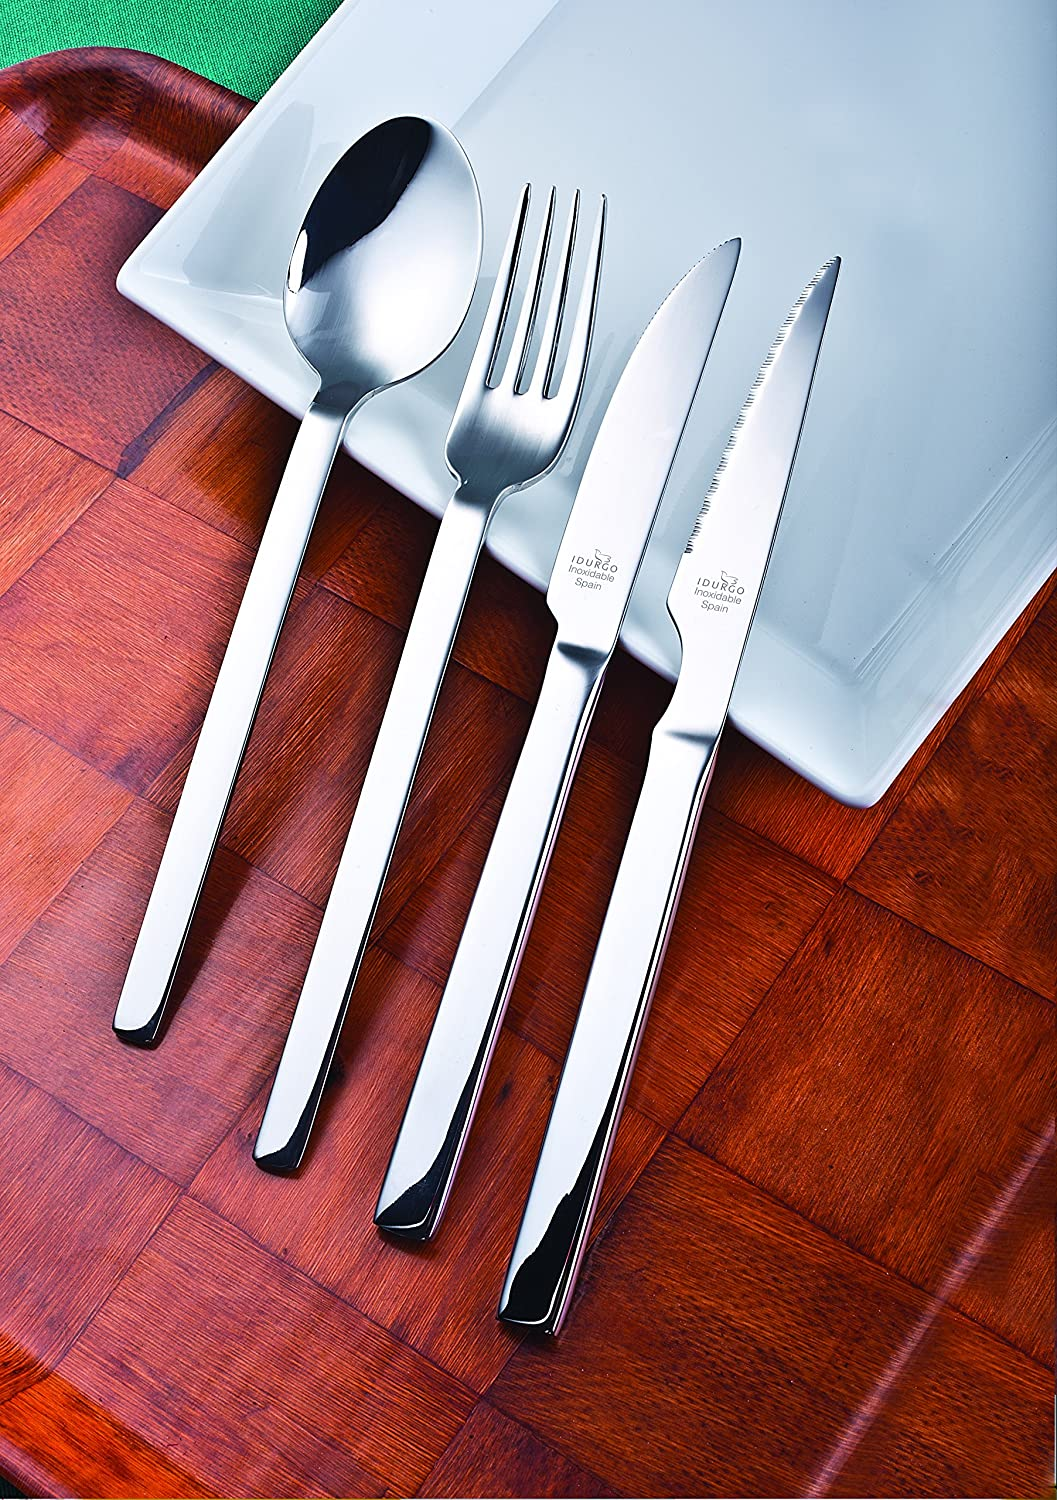 Amazon.com | idurgo Turin Ref. 18500 Cutlery Set, Stainless Steel: Dinnerware Sets